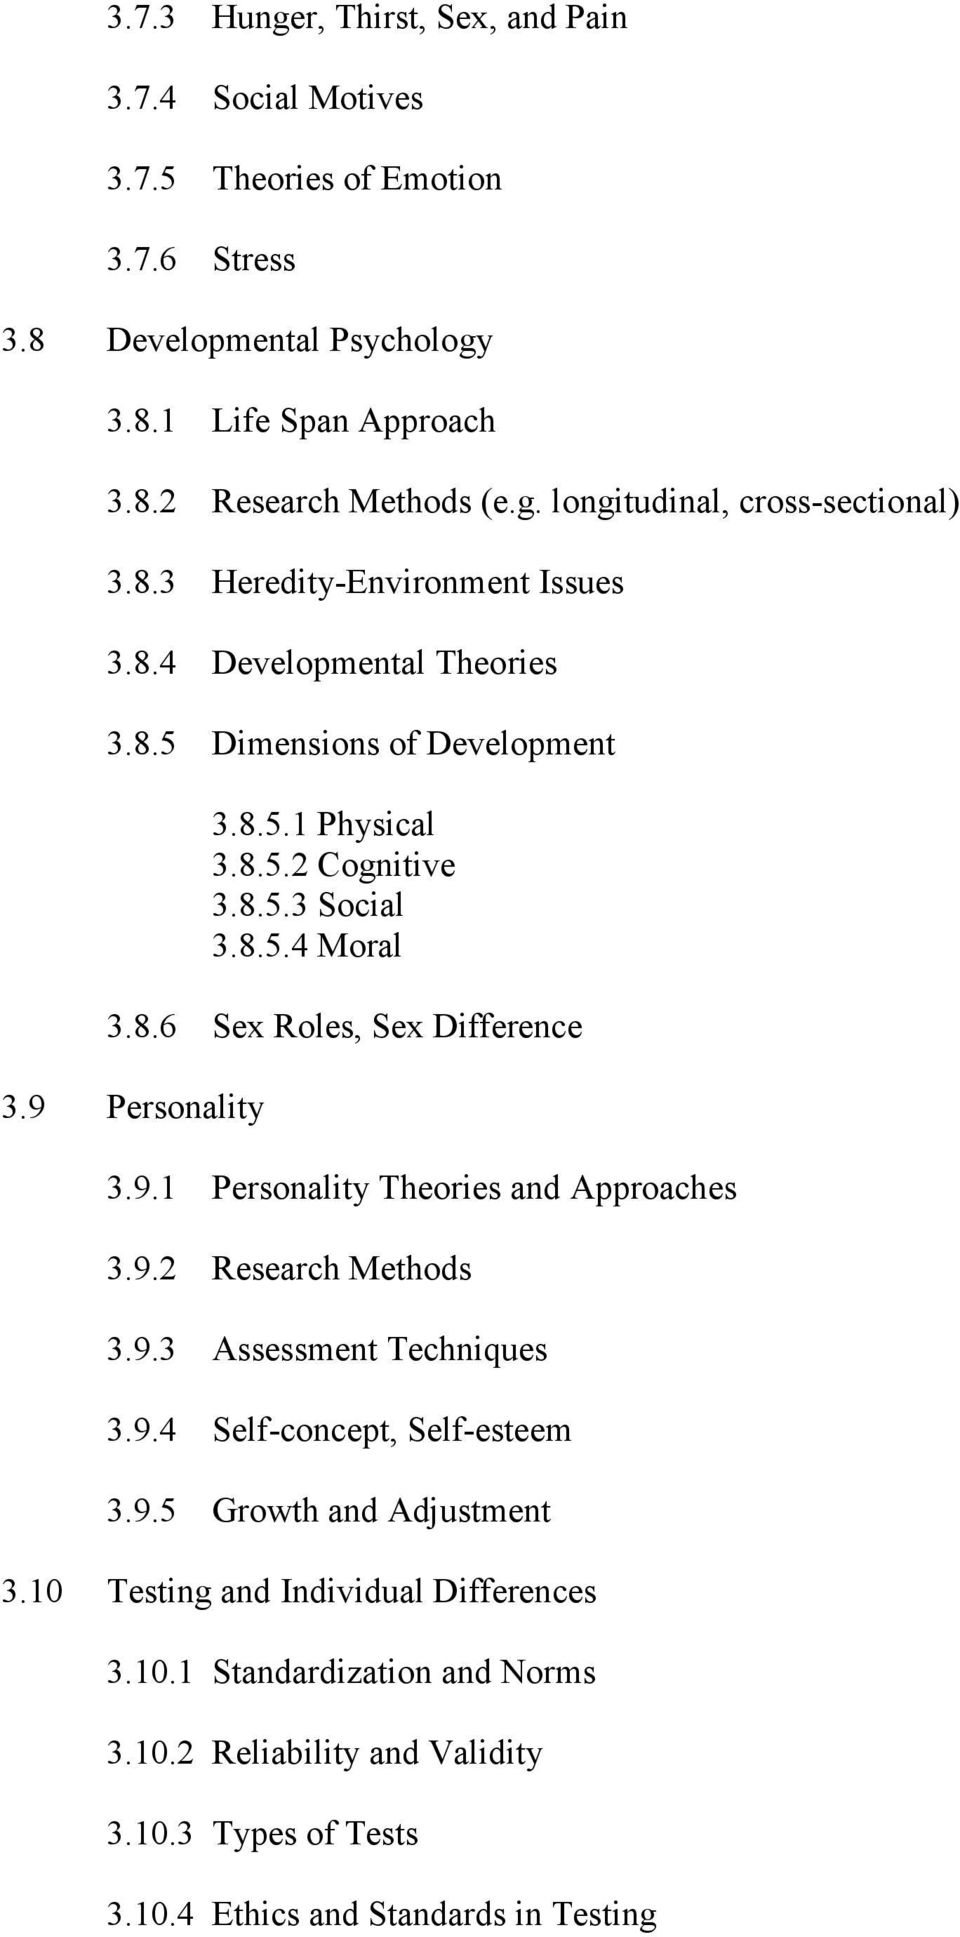 9 Personality 3.9.1 Personality Theories and Approaches 3.9.2 Research Methods 3.9.3 Assessment Techniques 3.9.4 Self-concept, Self-esteem 3.9.5 Growth and Adjustment 3.